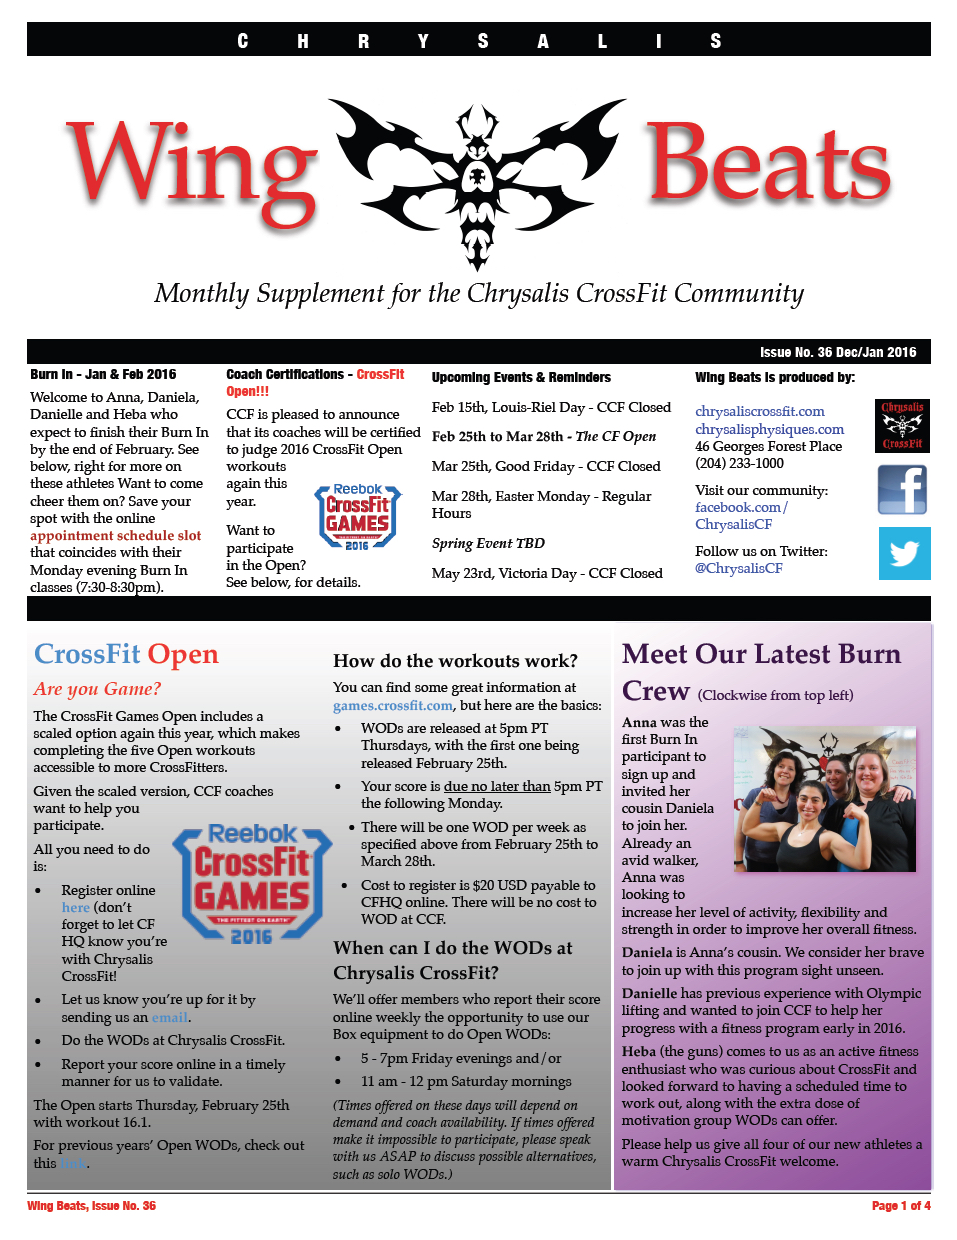 WingBeats Issue #36 - DecJan 2016